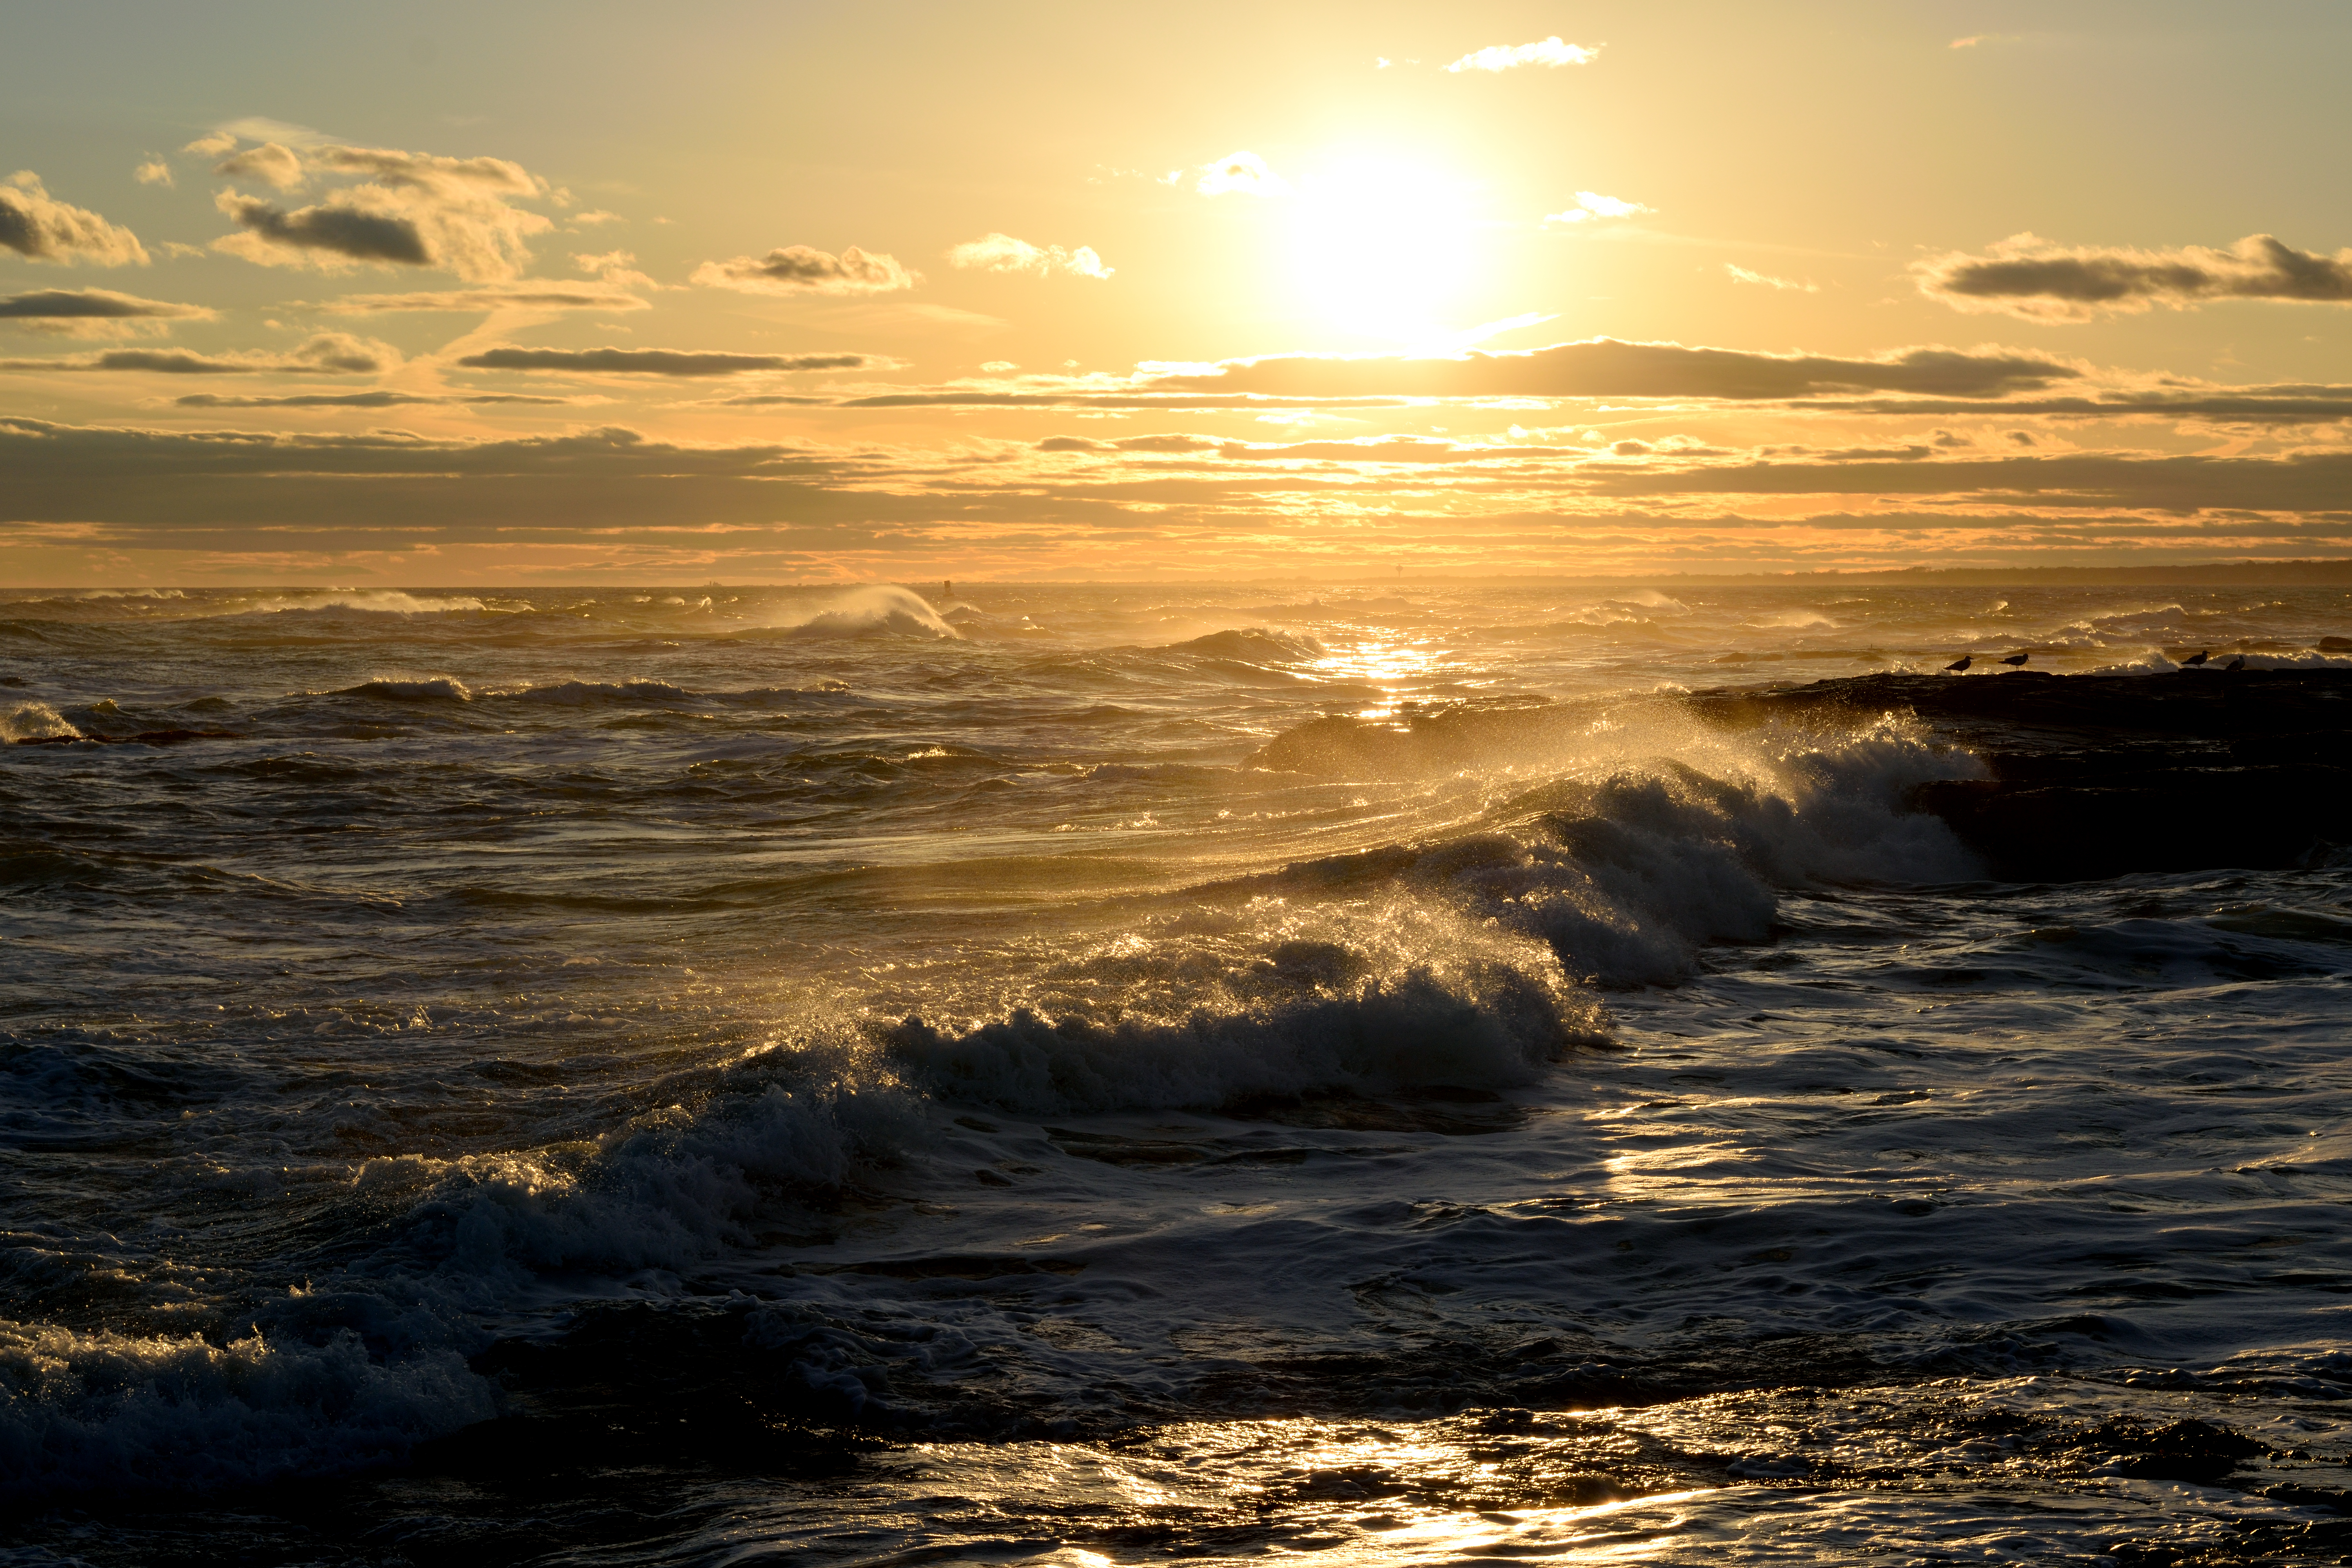 102183 download wallpaper Nature, Sea, Glare, Waves, Sun screensavers and pictures for free